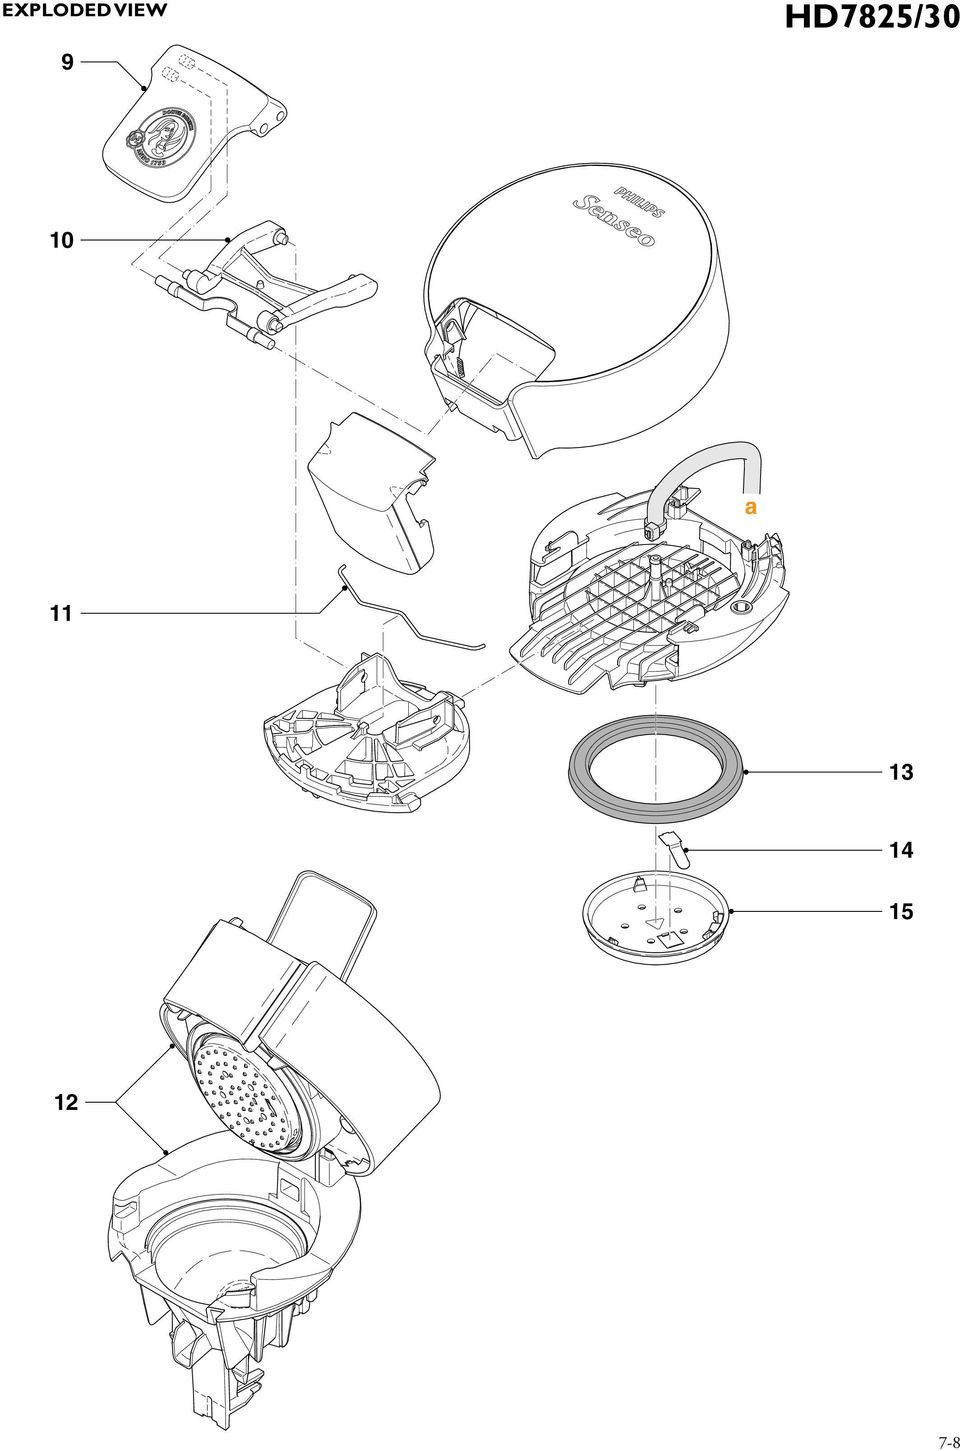 Service Manual. Coffee maker Senseo Viva Café HD7825/30 10